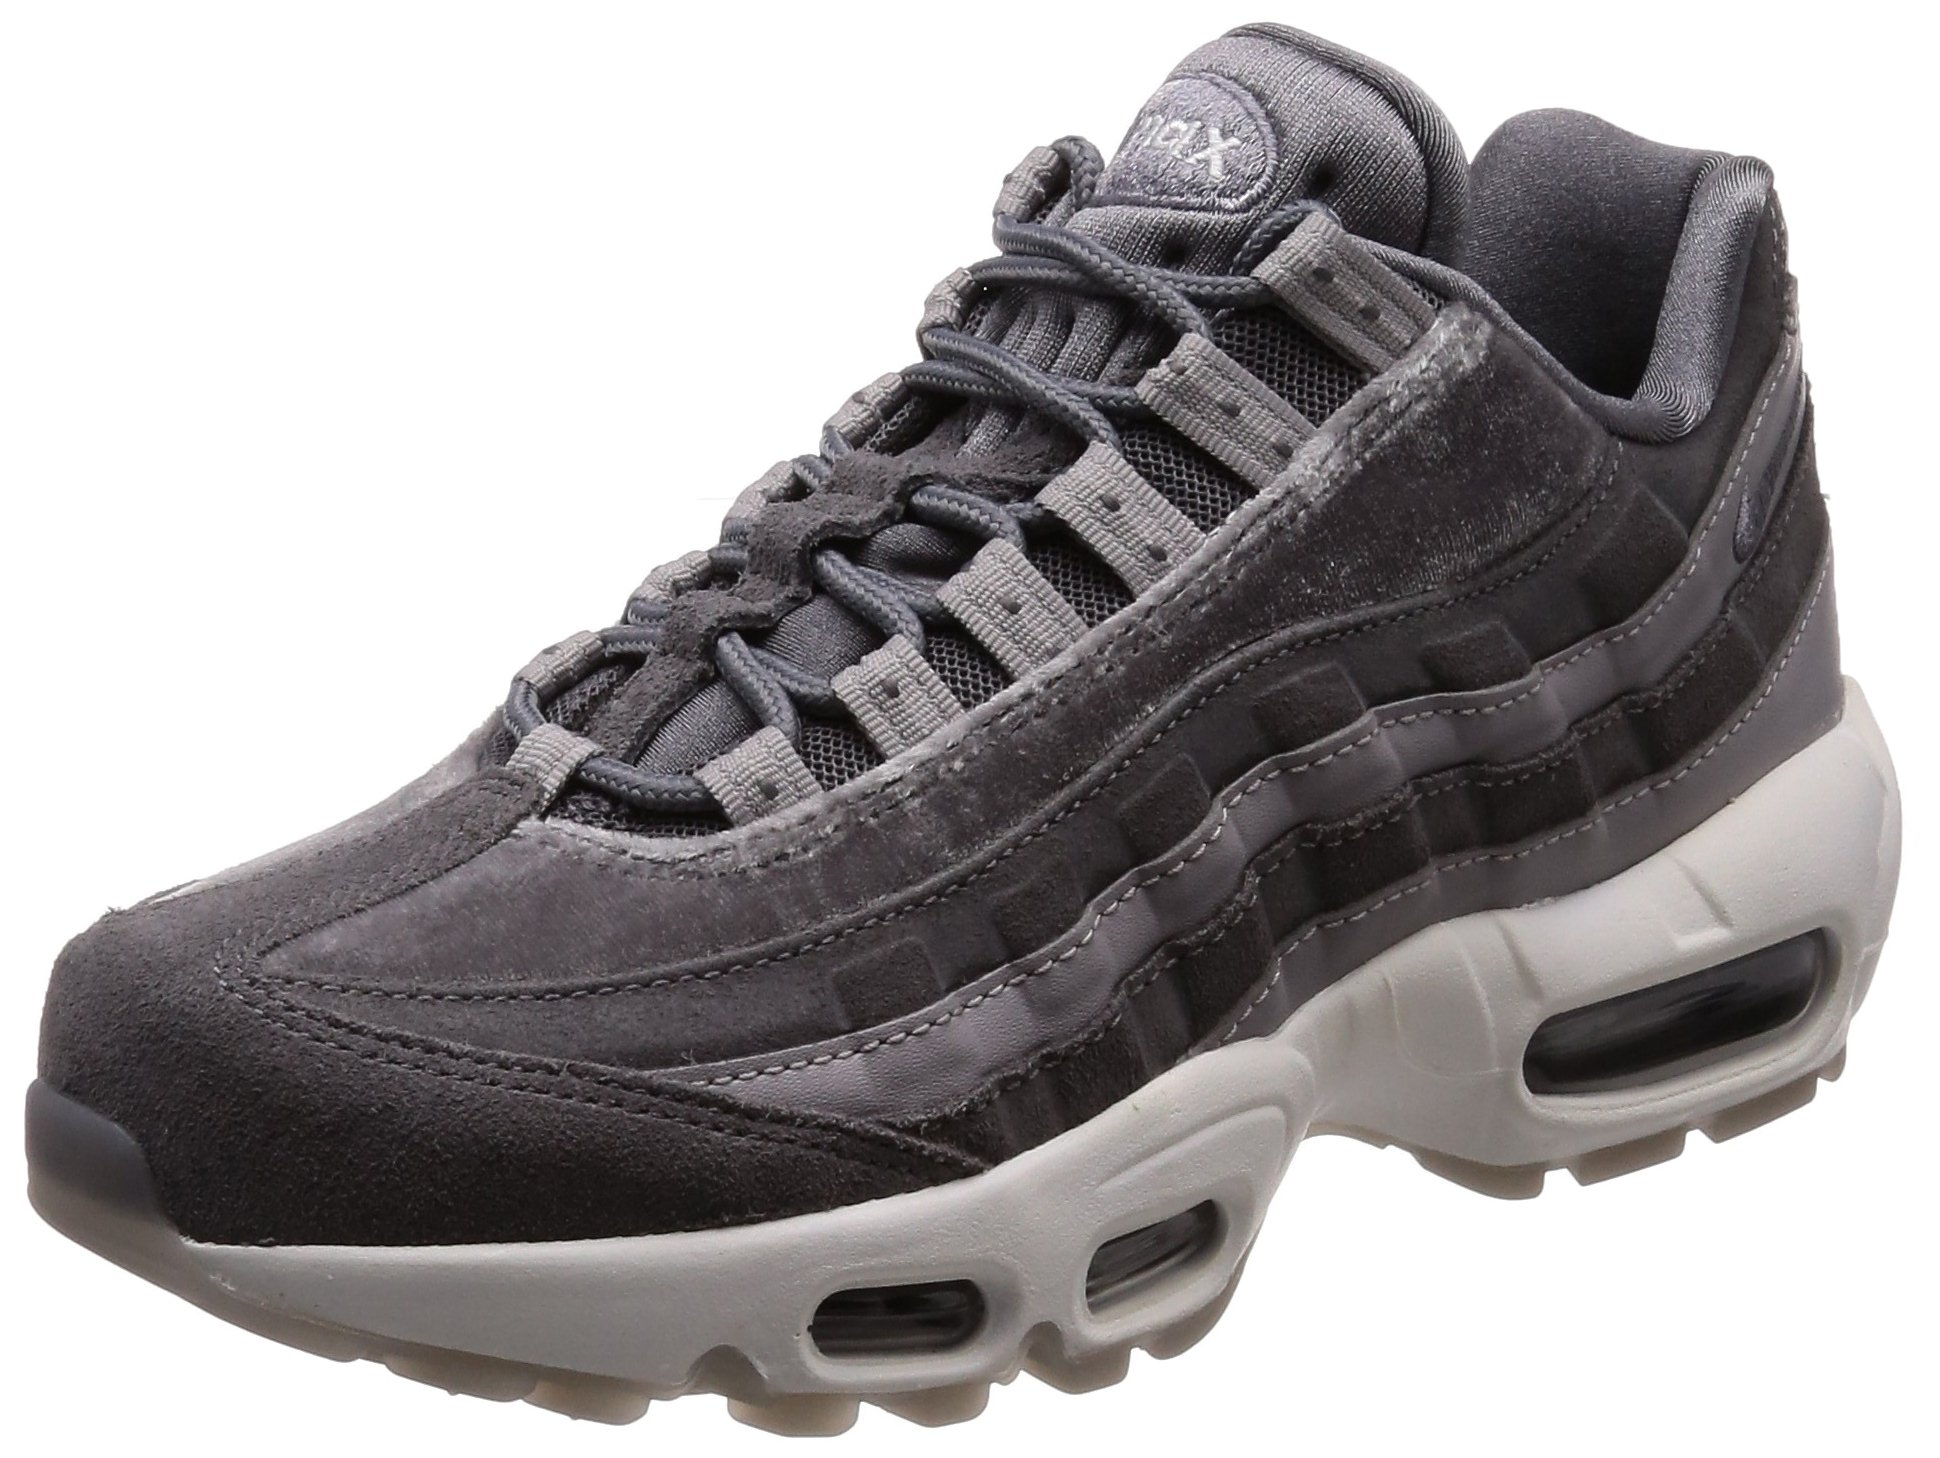 hot sale online dbdf6 03381 Galleon - Nike Air Max 95 LX Women s Running Shoes Gunsmoke Gunsmoke Aa1103- 003 (8 B(M) US)